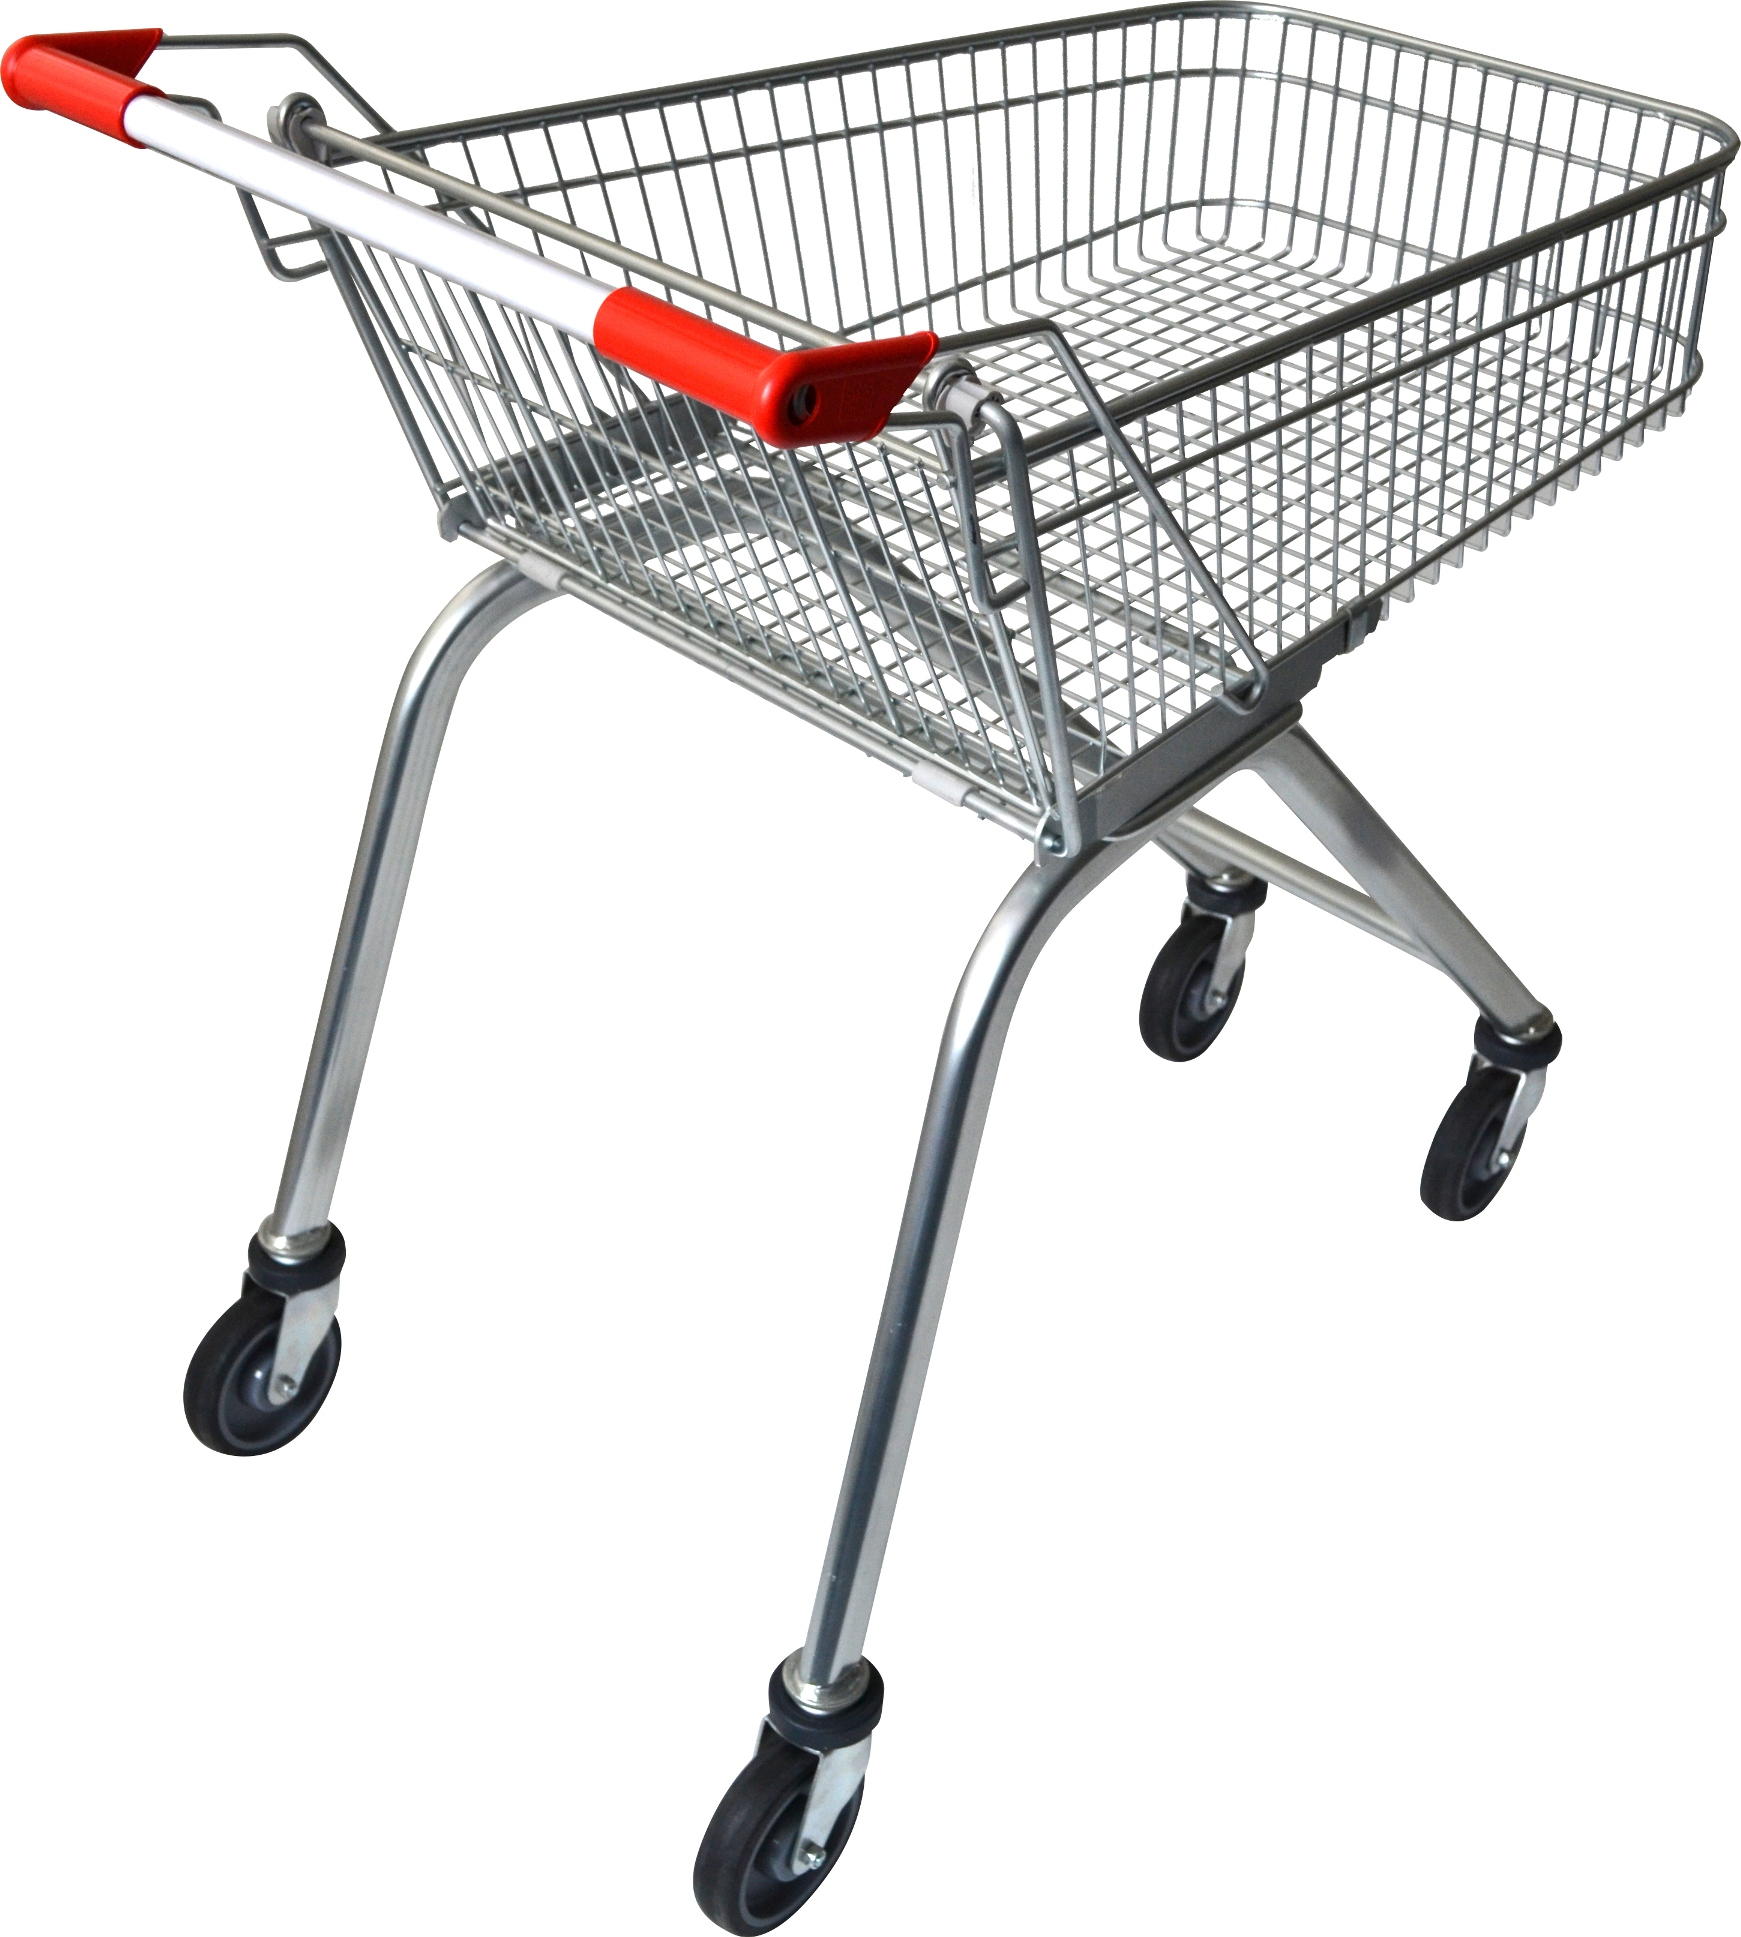 This 70 litre supermarket shopping trolley is smaller than the usual supermarket trolleys, it offers convenience for light shoppers in any retail stores and makes shopping & checkout easy. Enquire today, ships Australia wide!